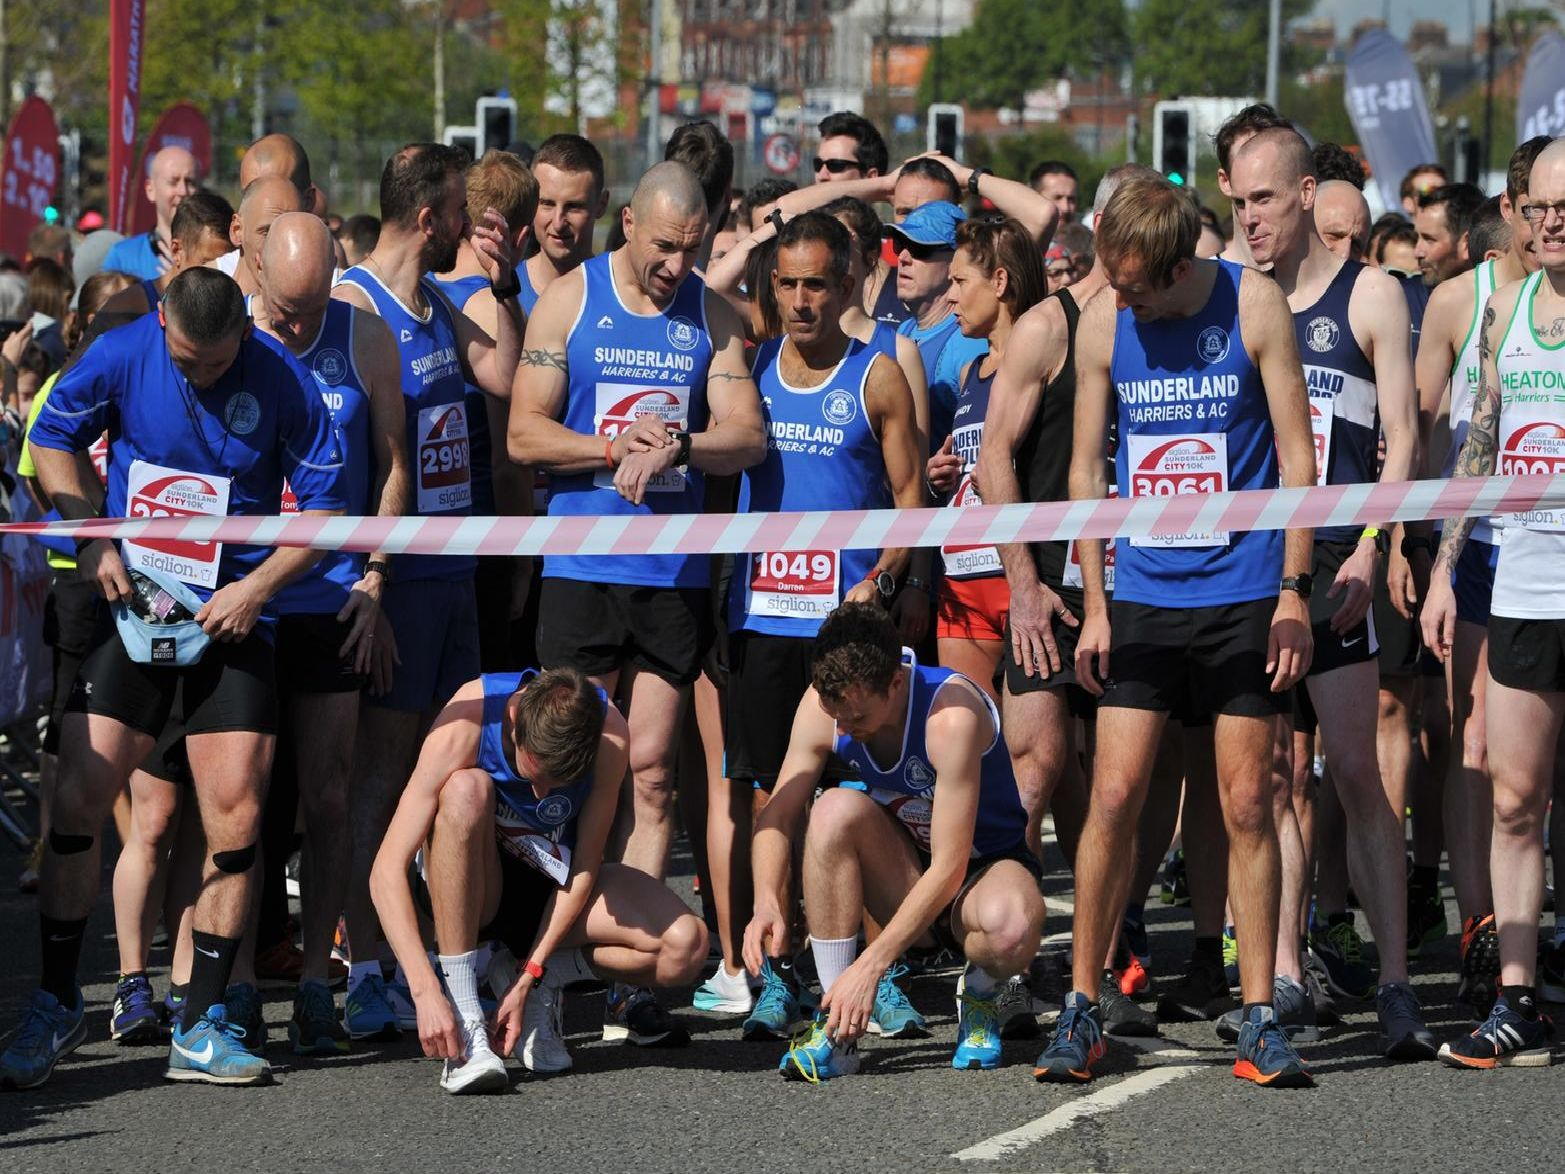 Ready for the off at the start of the Siglion Sunderland 10k.